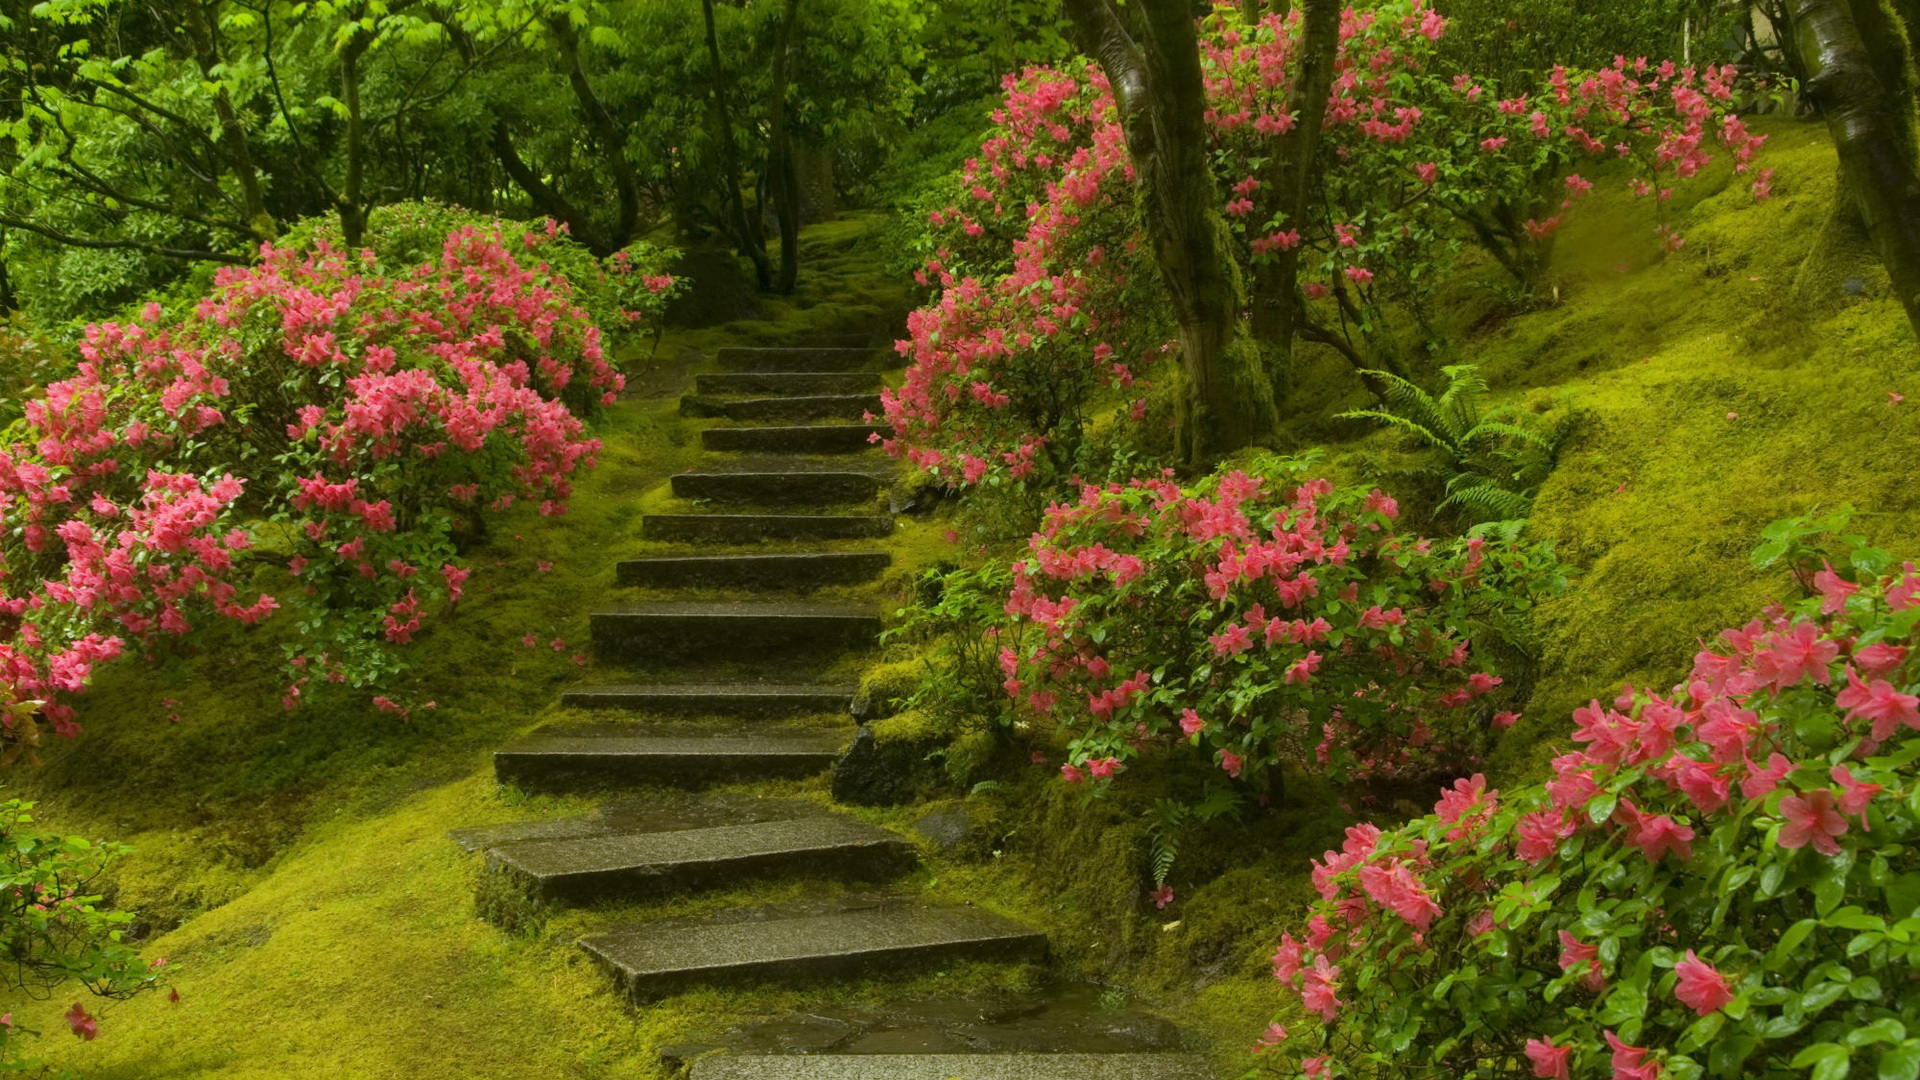 click to free download the wallpaper--landscape photography - Pink Flowers Along the Wet Steps, Fantanstic Walking Experience 1920X1080 free wallpaper download